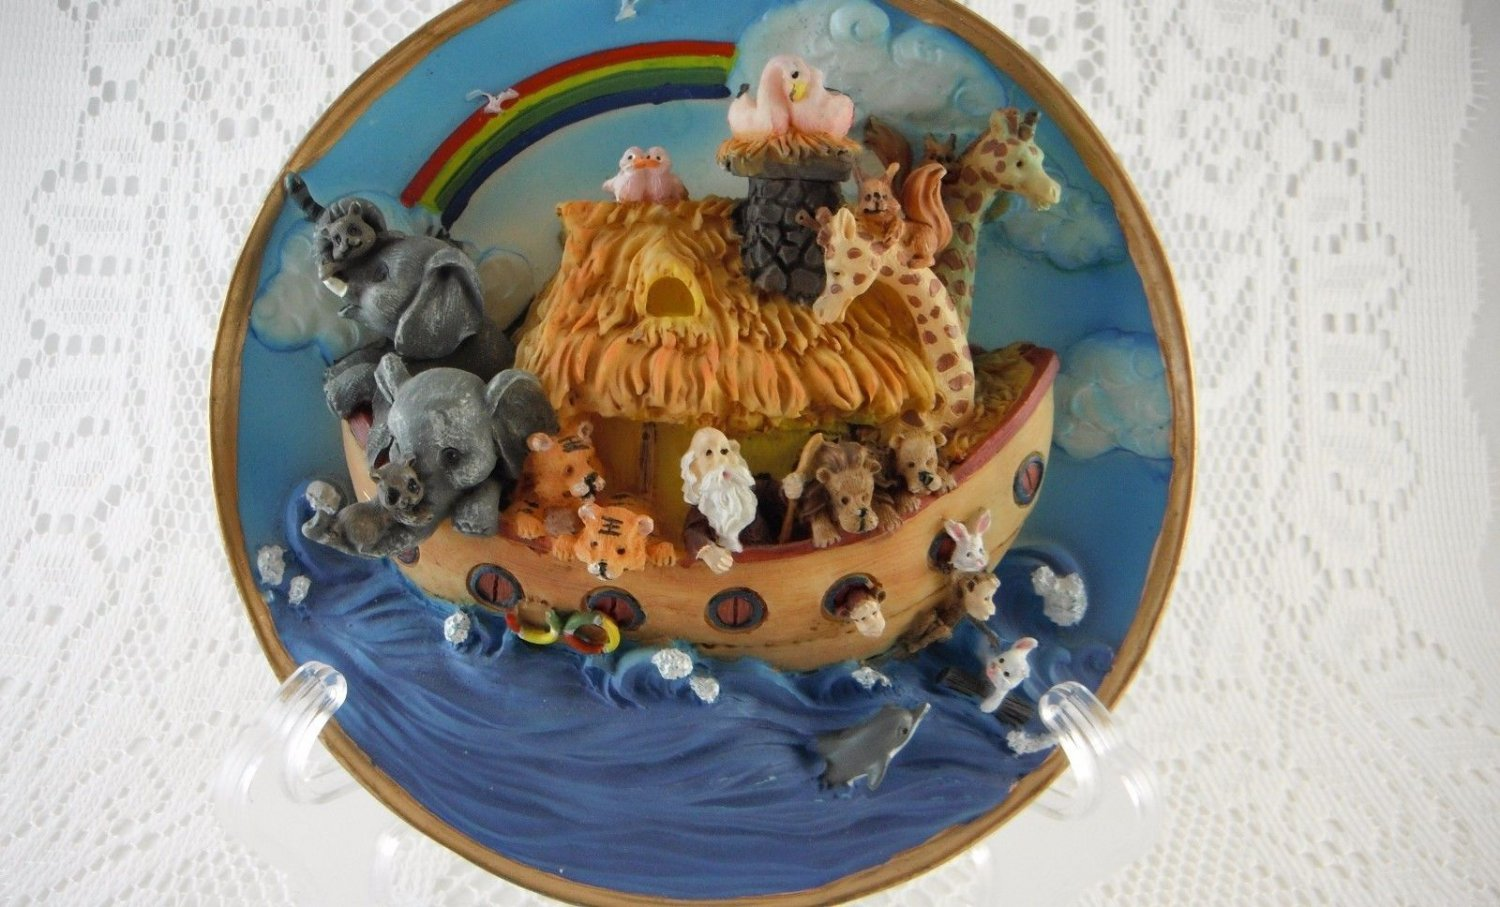 Resin Cadona Noah Ark Plate 1999 Two by Two Biblical Colorful Dimensional tblqd1